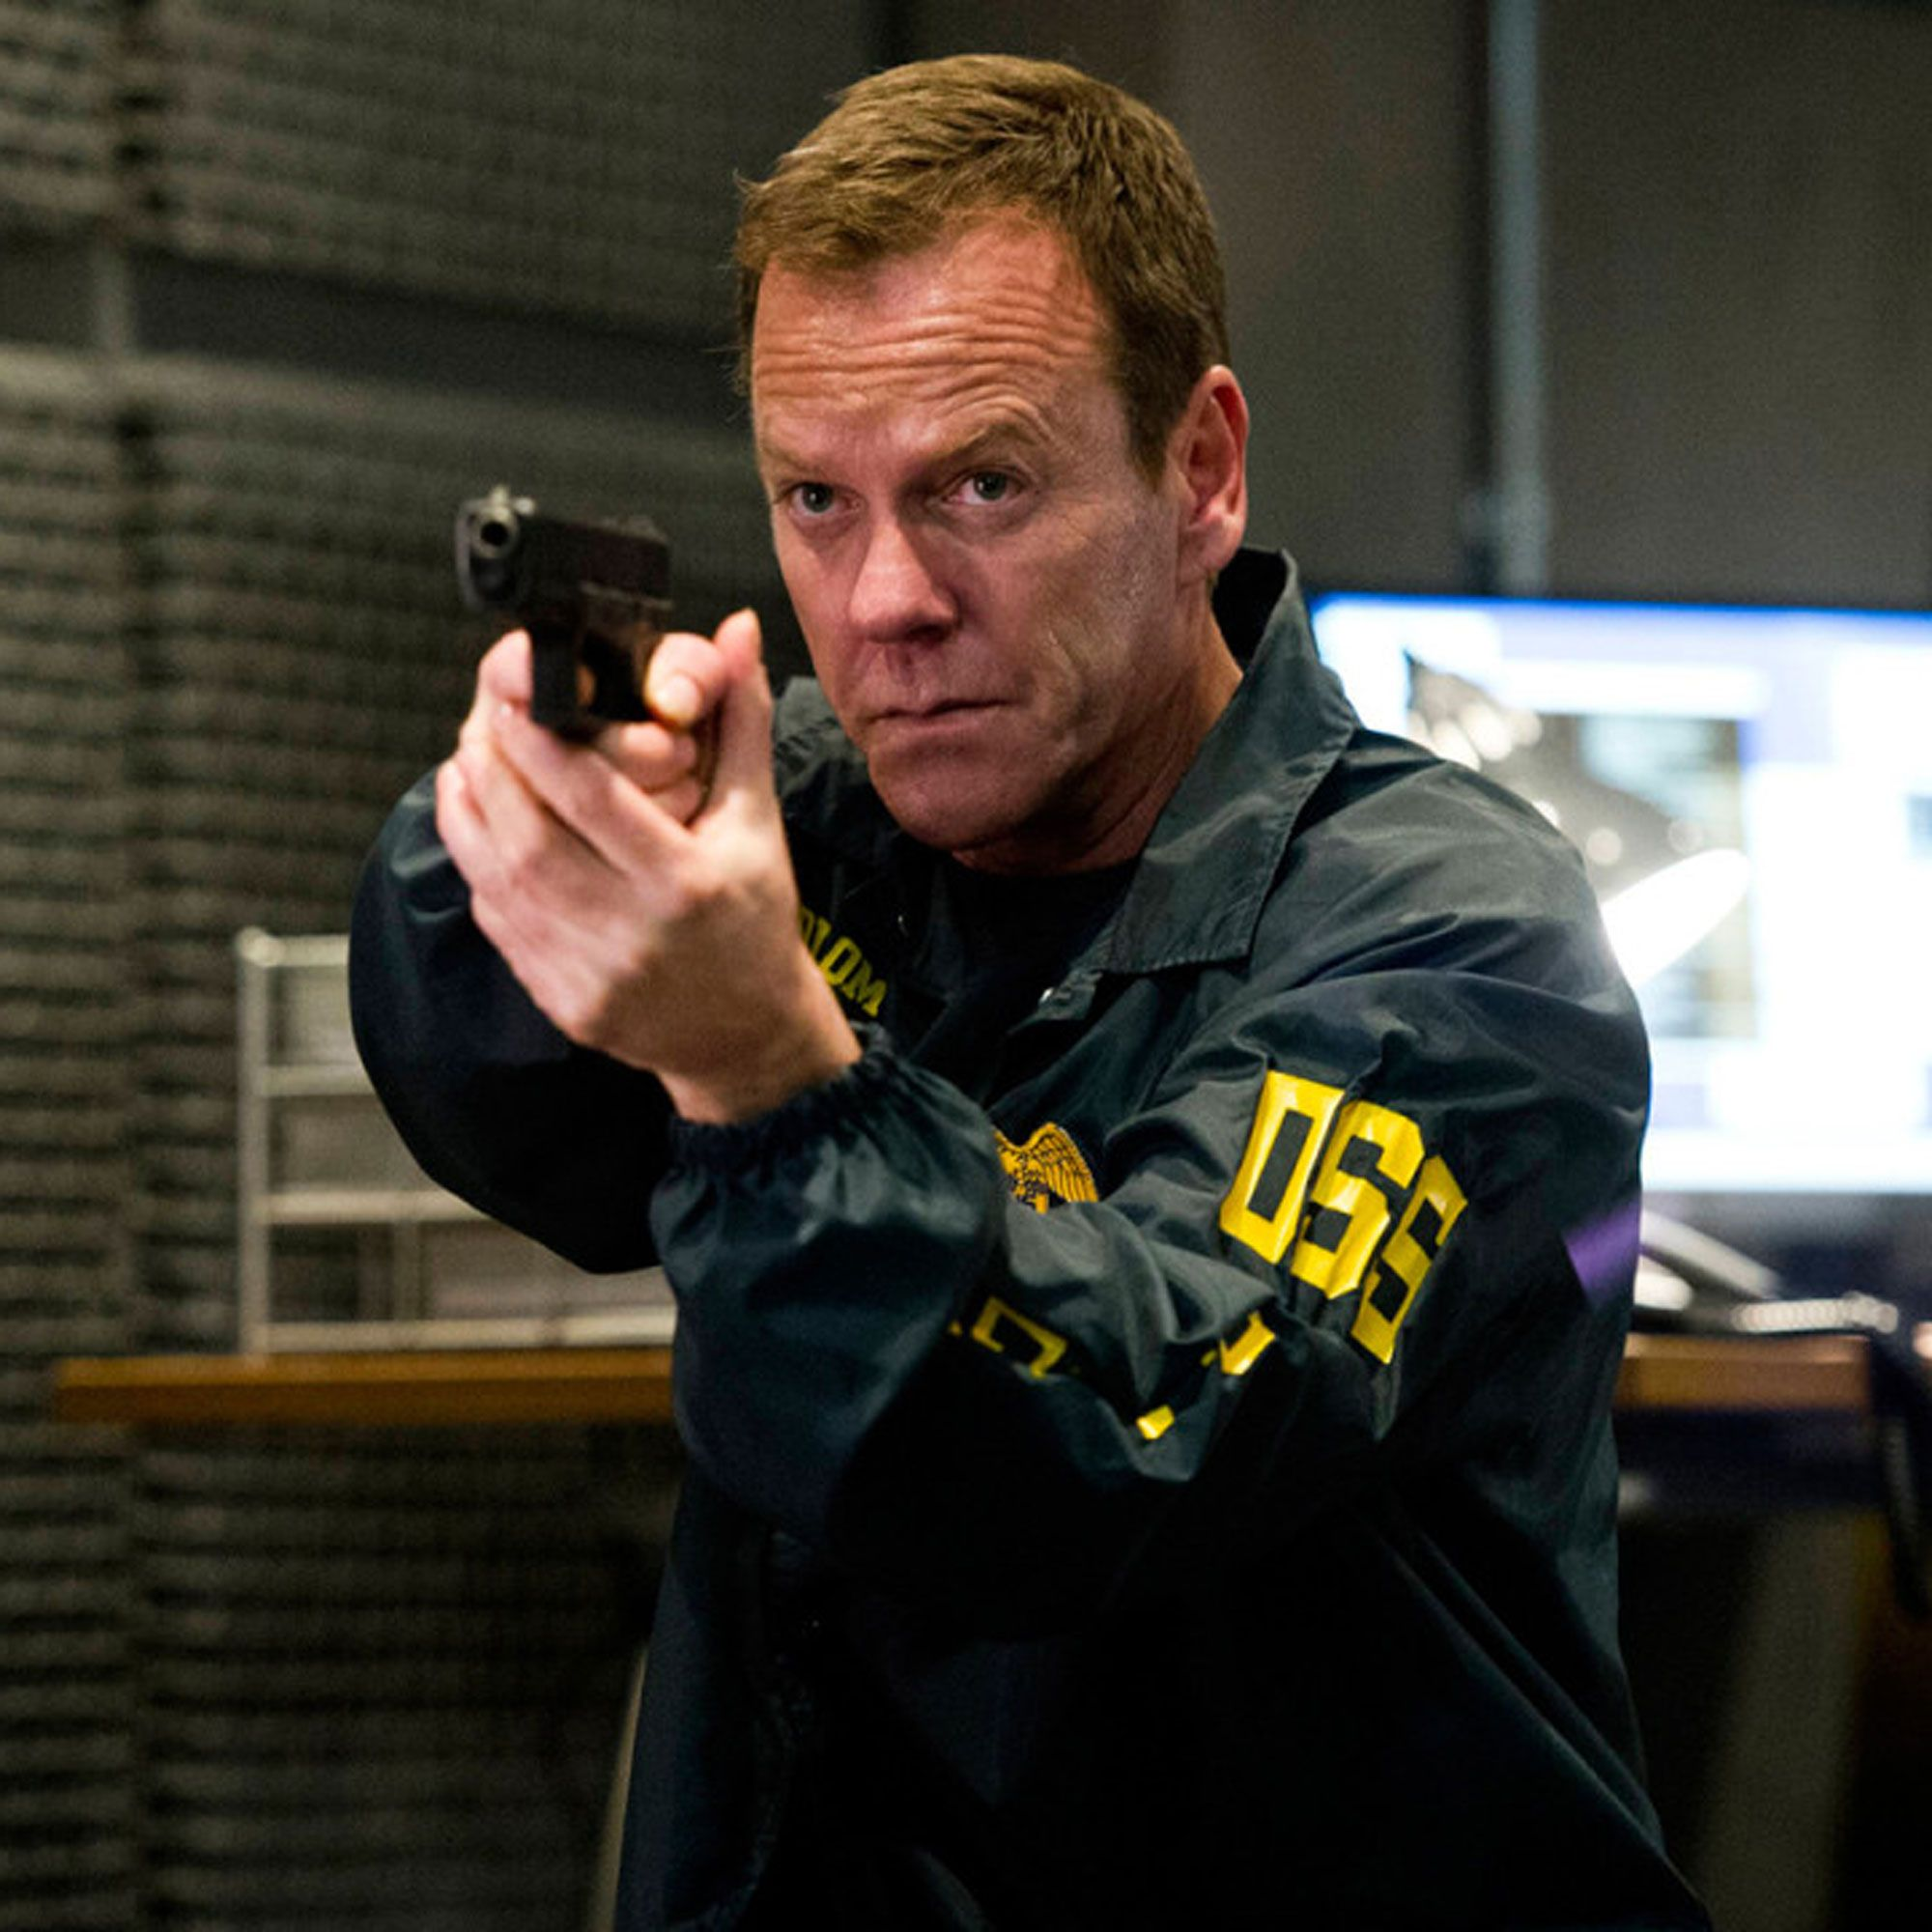 24 season 10 cast, release date... and will Jack Bauer return?